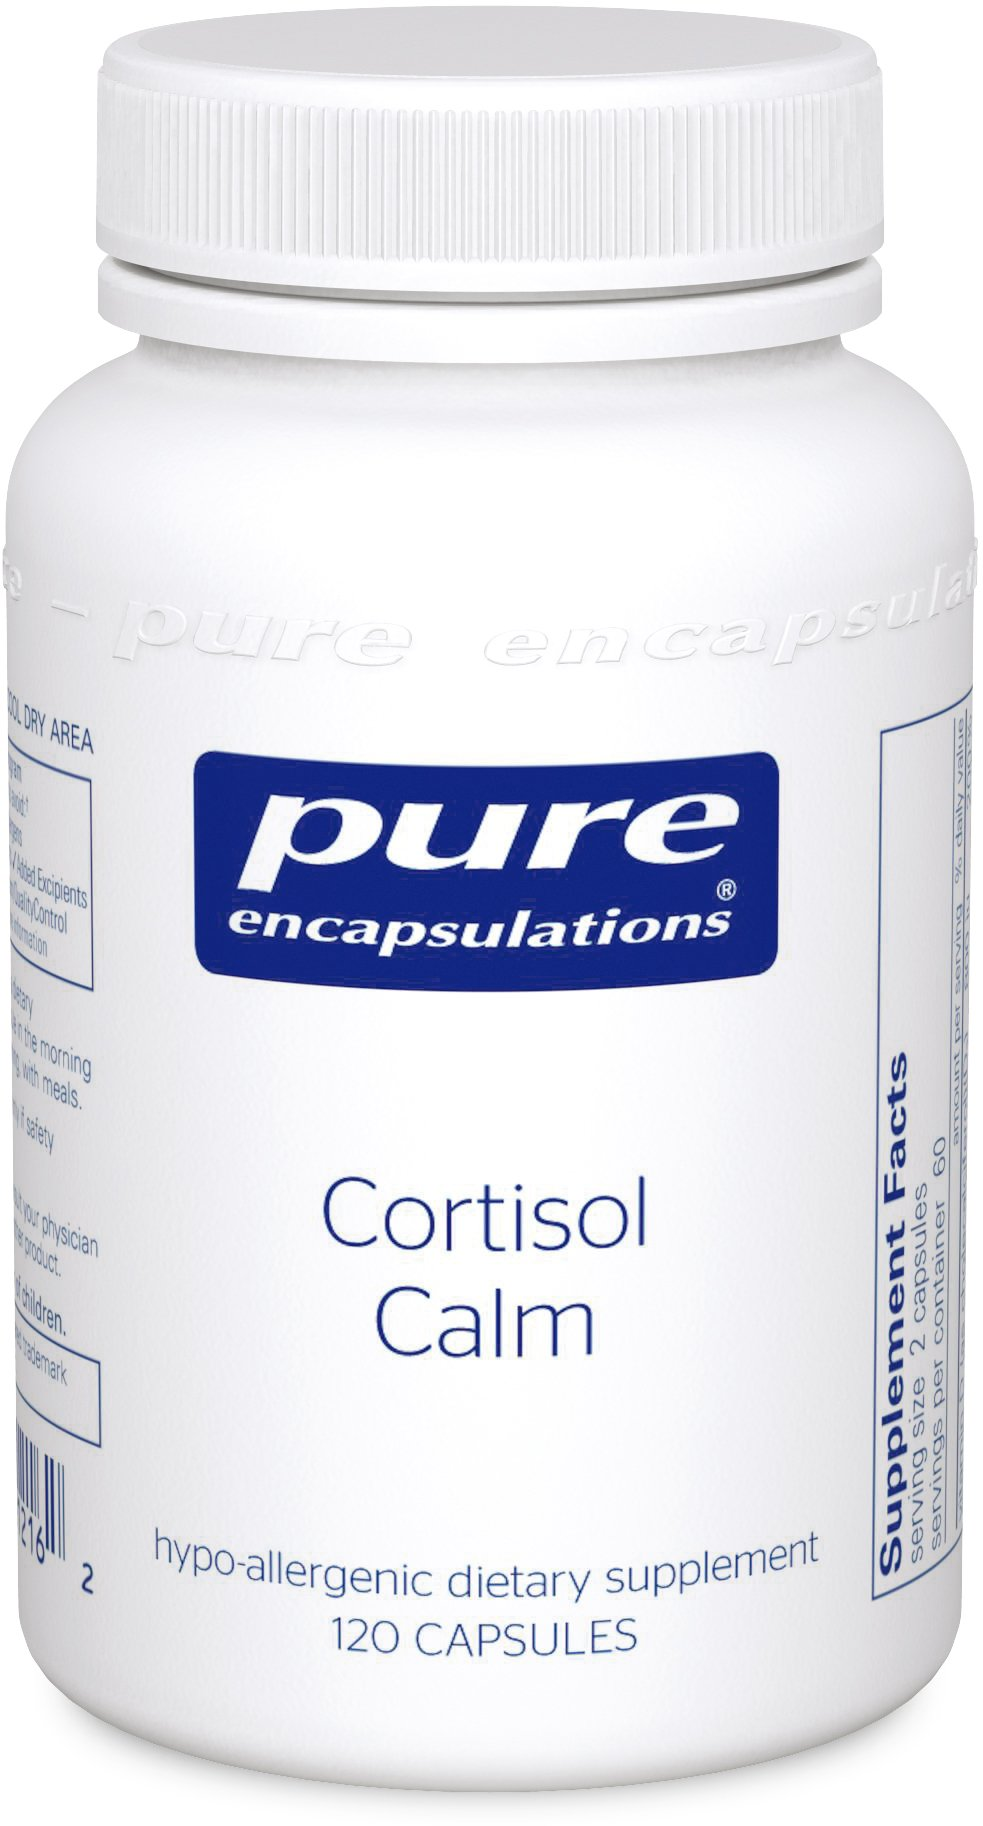 Pure Encapsulations - Cortisol Calm - Hypoallergenic Supplement to Maintain Healthy Cortisol Levels* - 120 Capsules by Pure Encapsulations